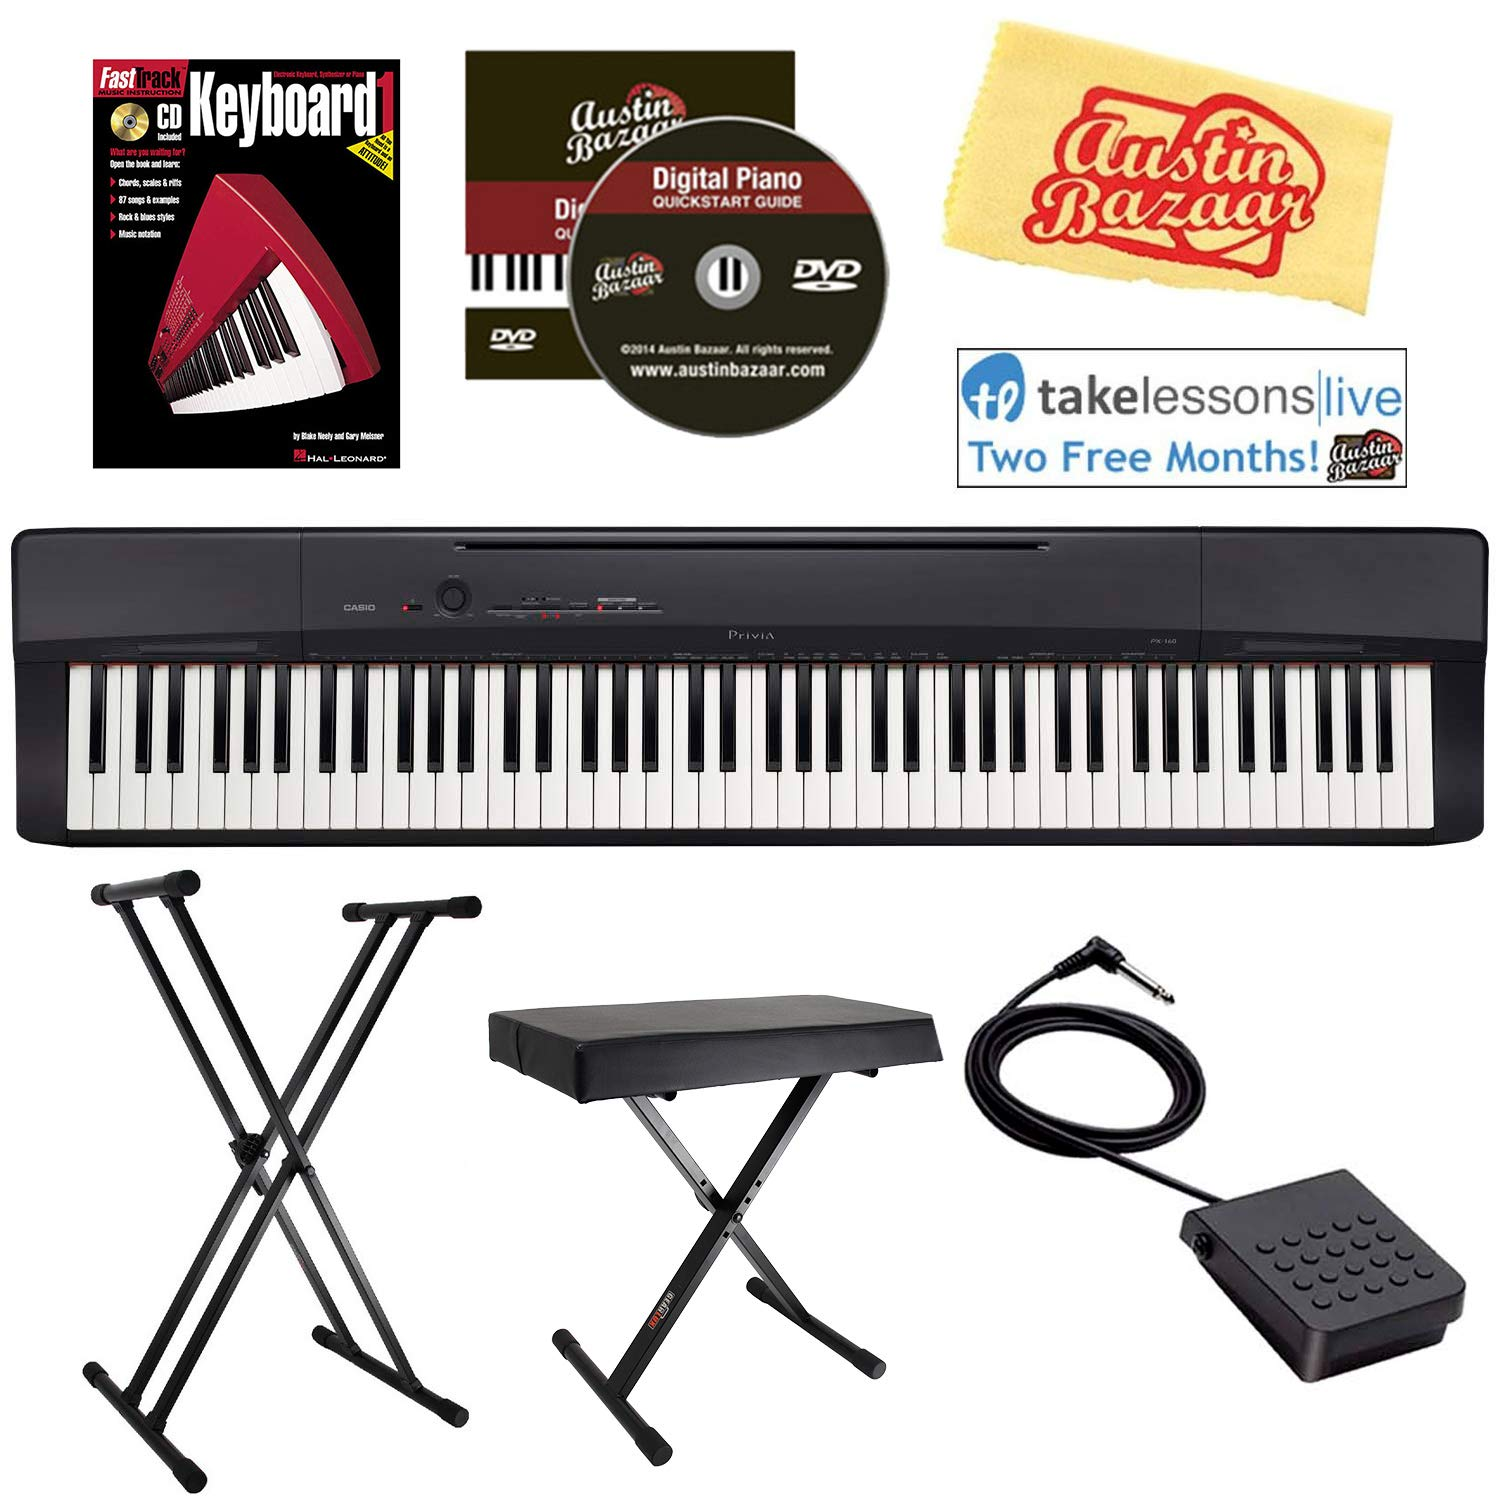 Casio Privia PX-160 Digital Piano - Black Bundle with Adjustable Stand, Bench, Sustain Pedal, Instructional Book, Austin Bazaar Instructional DVD, Online Lessons, and Polishing Cloth by Casio